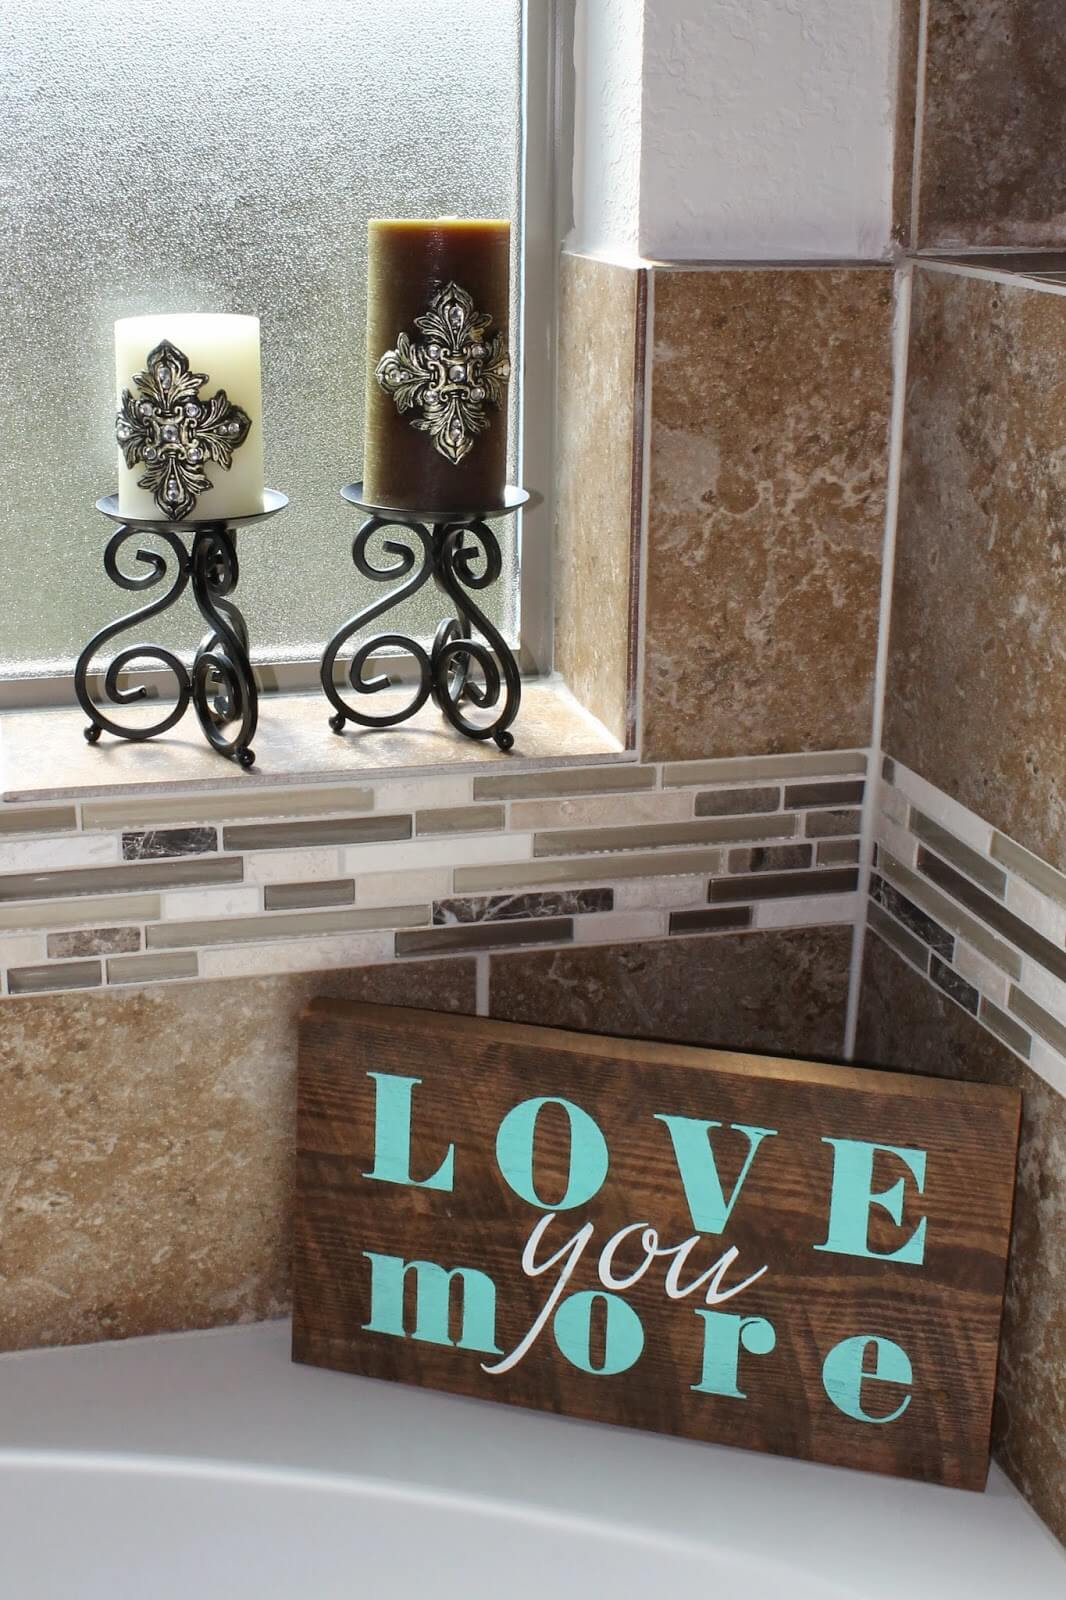 Happy Relationship Reminder for Your Bathroom Nook